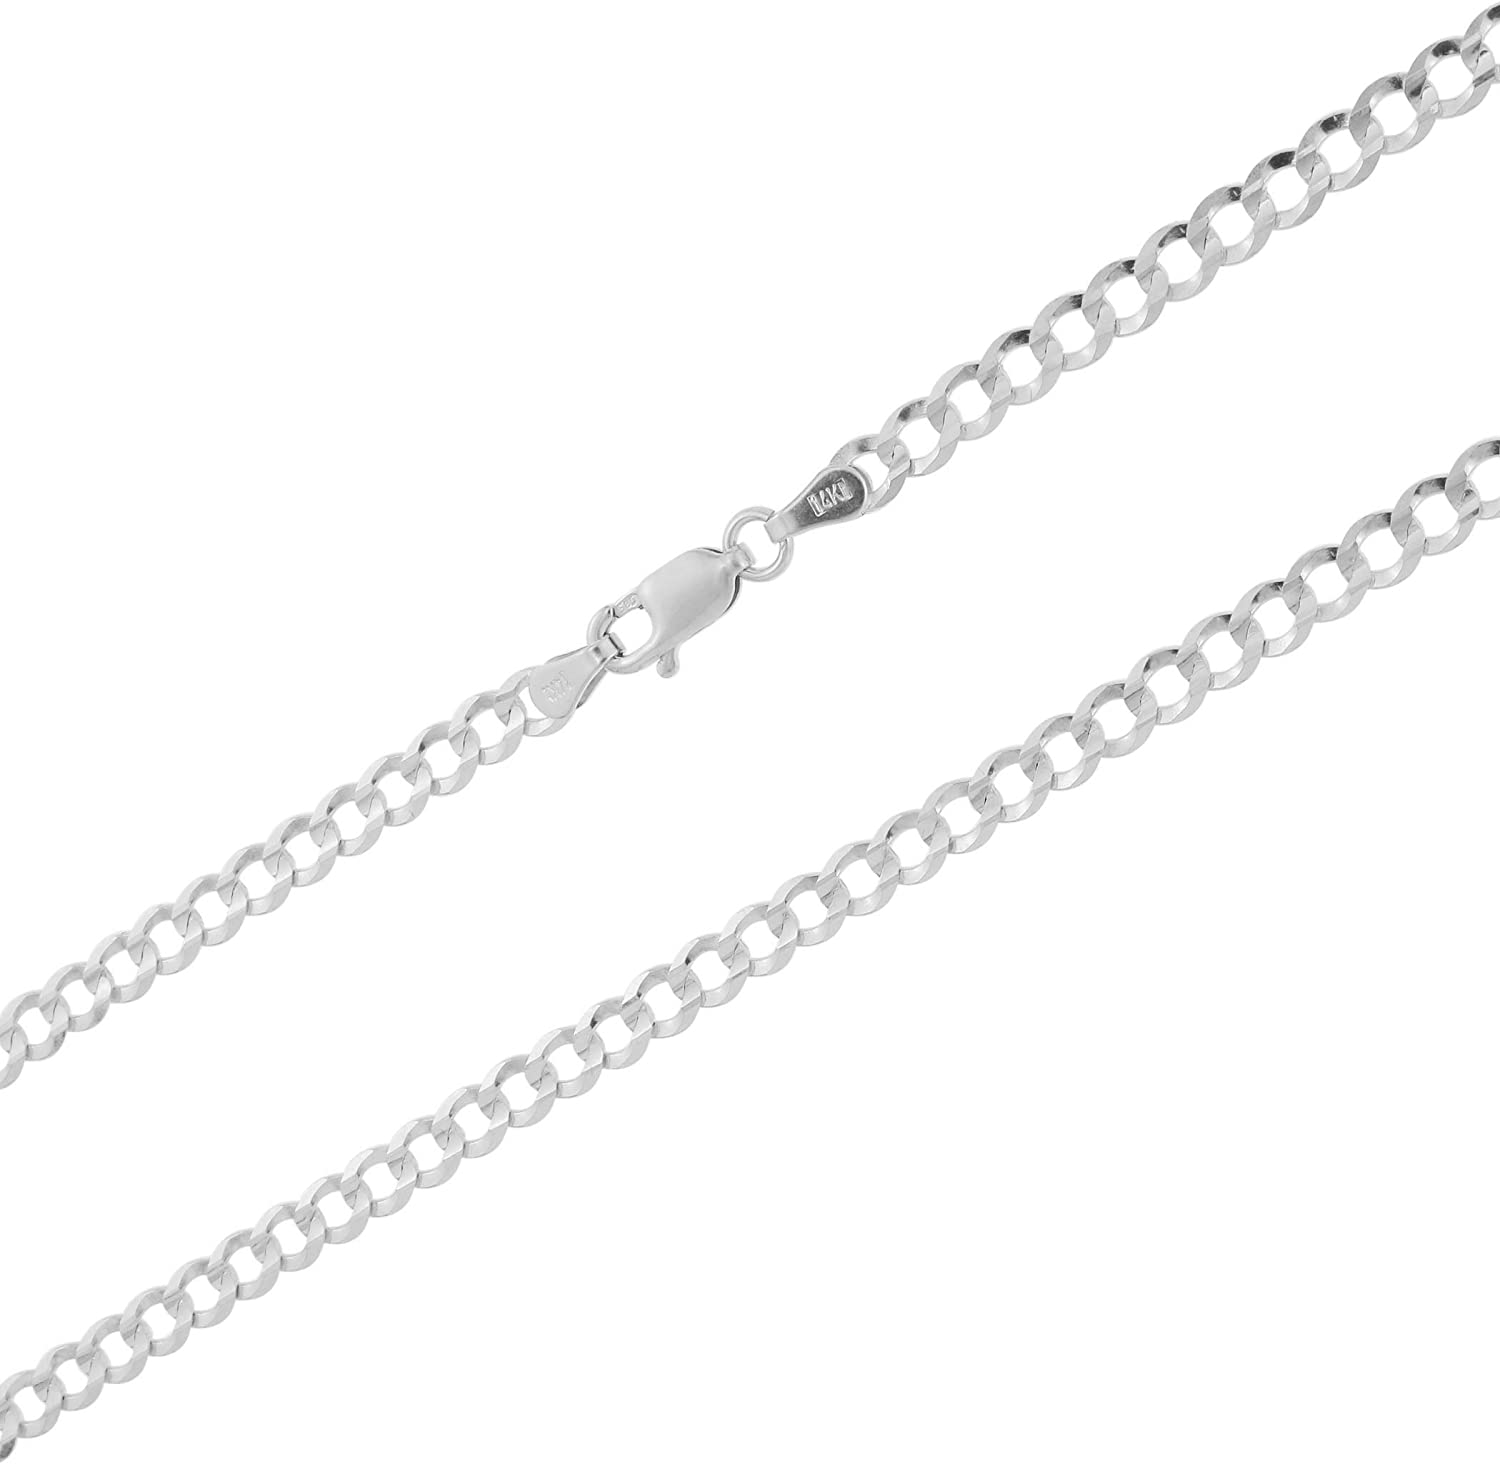 Nuragold 14k White Gold 4mm Solid Cuban Link Chain Curb Pendant Necklace, Mens Womens Lobster Lock 16